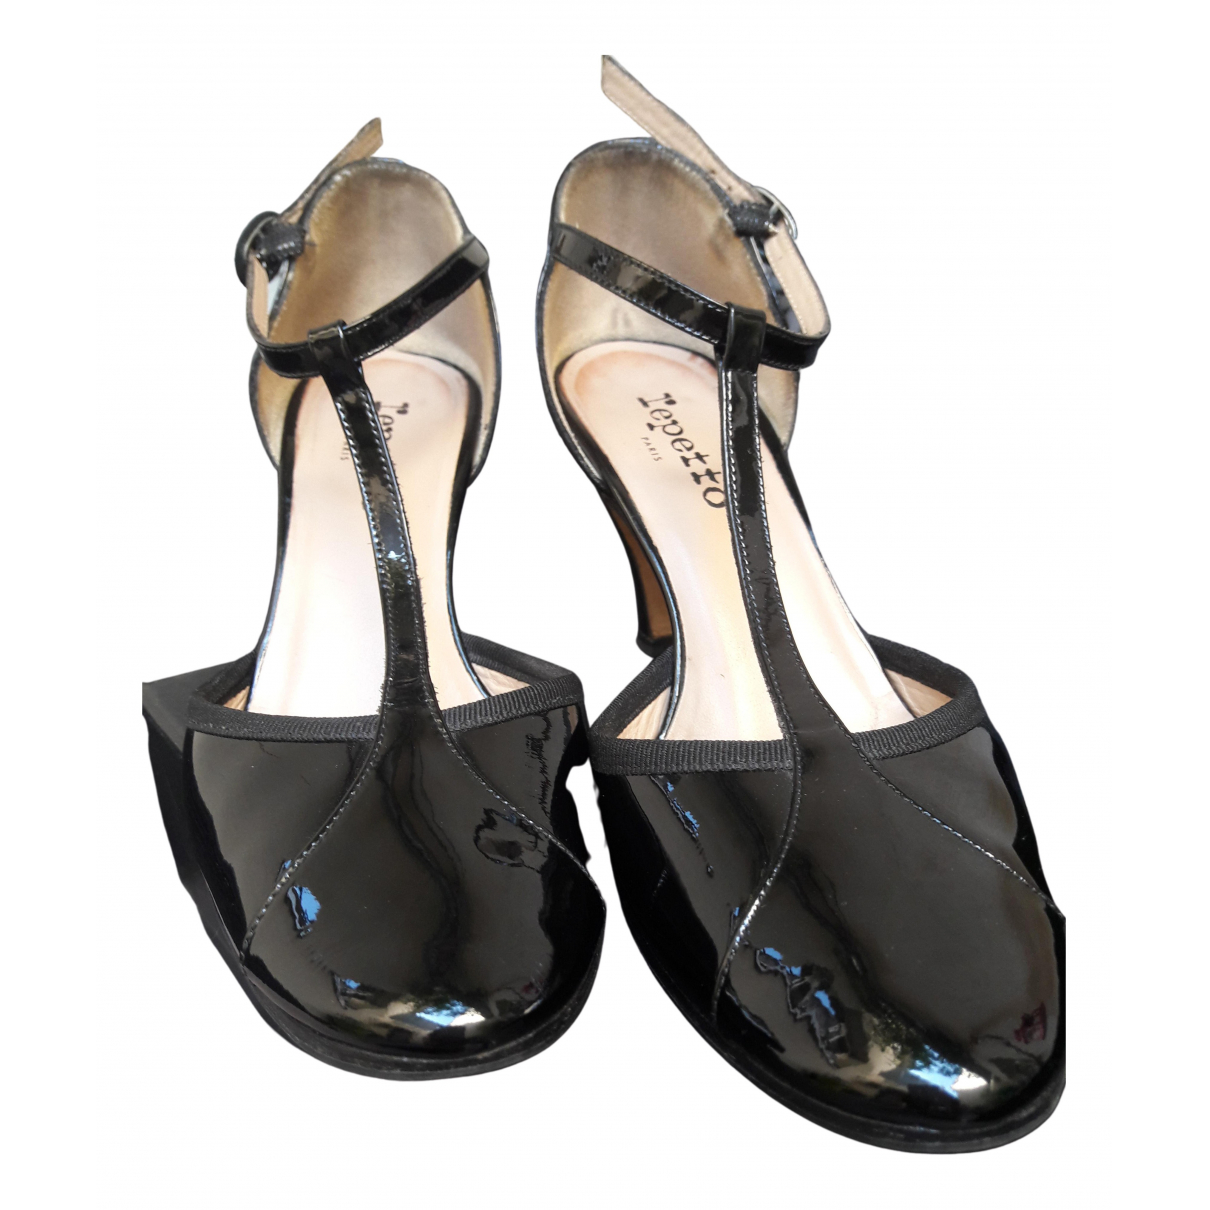 Repetto \N Black Patent leather Heels for Women 39 EU